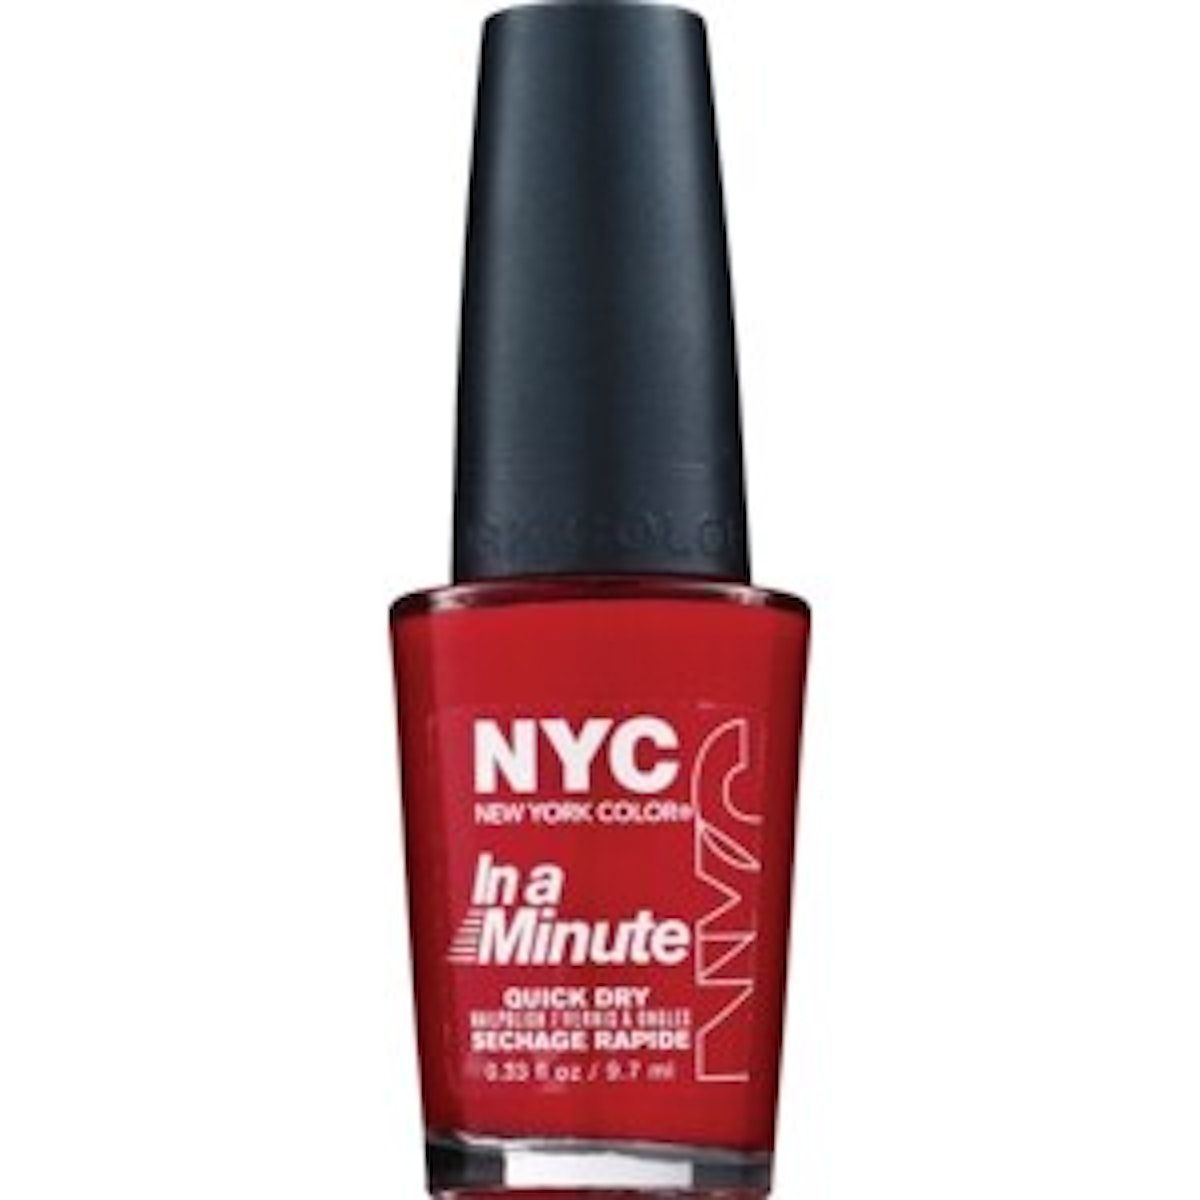 In A Minute Quick Dry Nail Polish